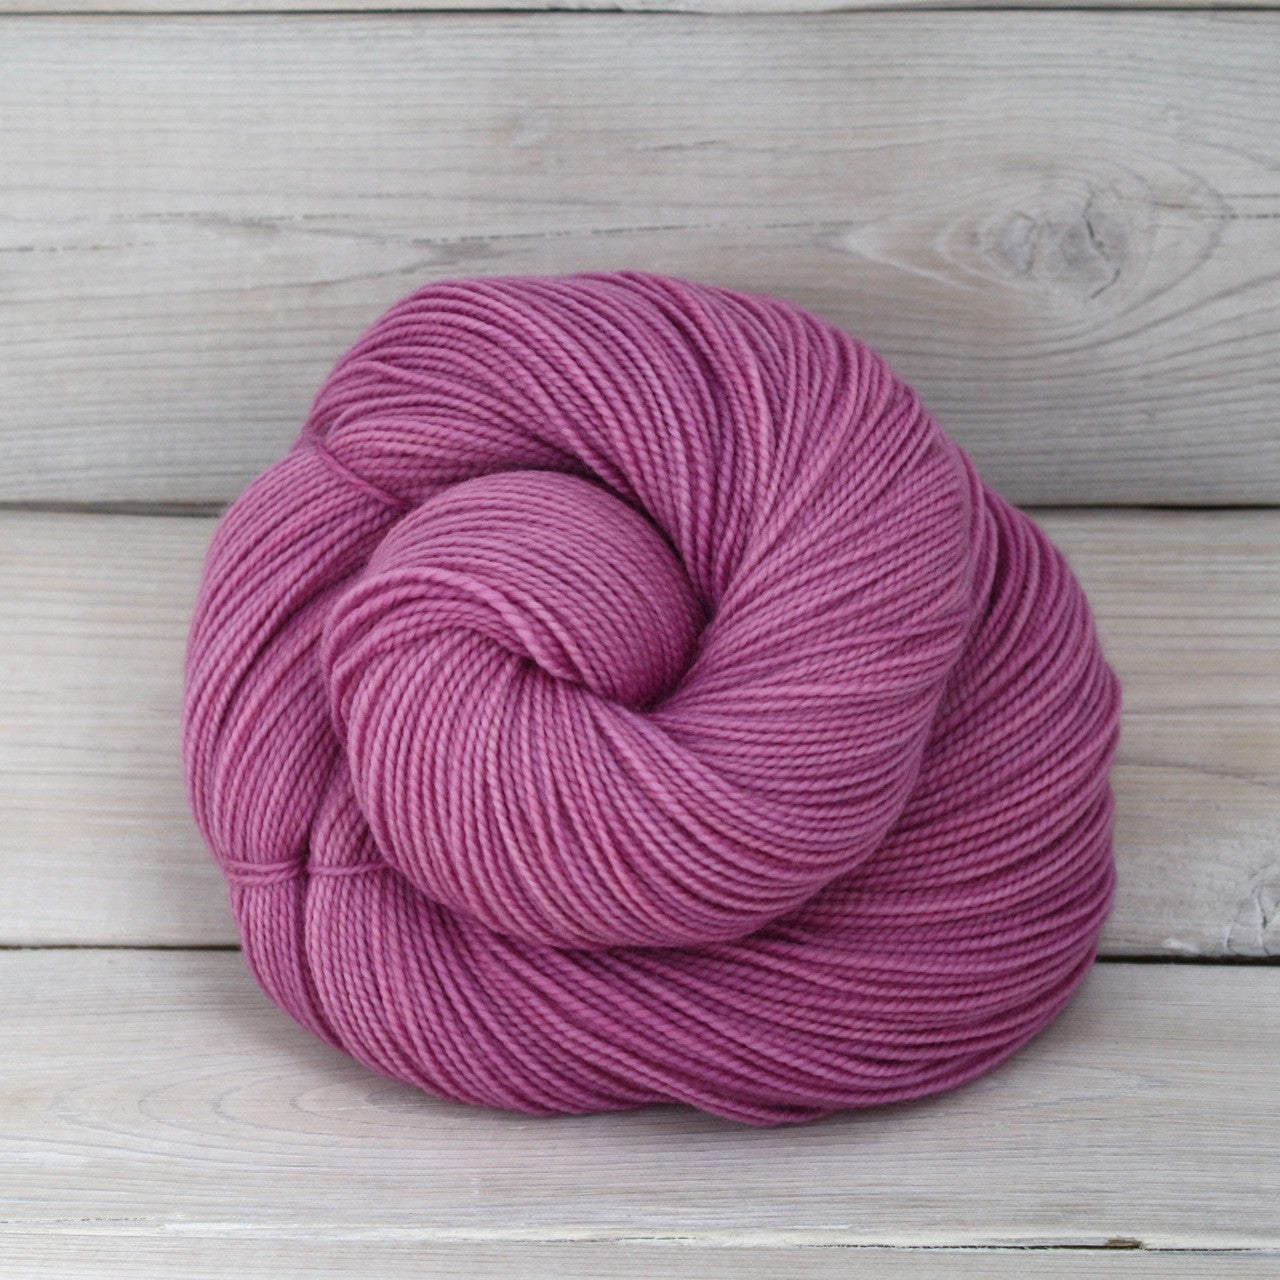 Celeste Yarn | Colorway: Radiant Orchid